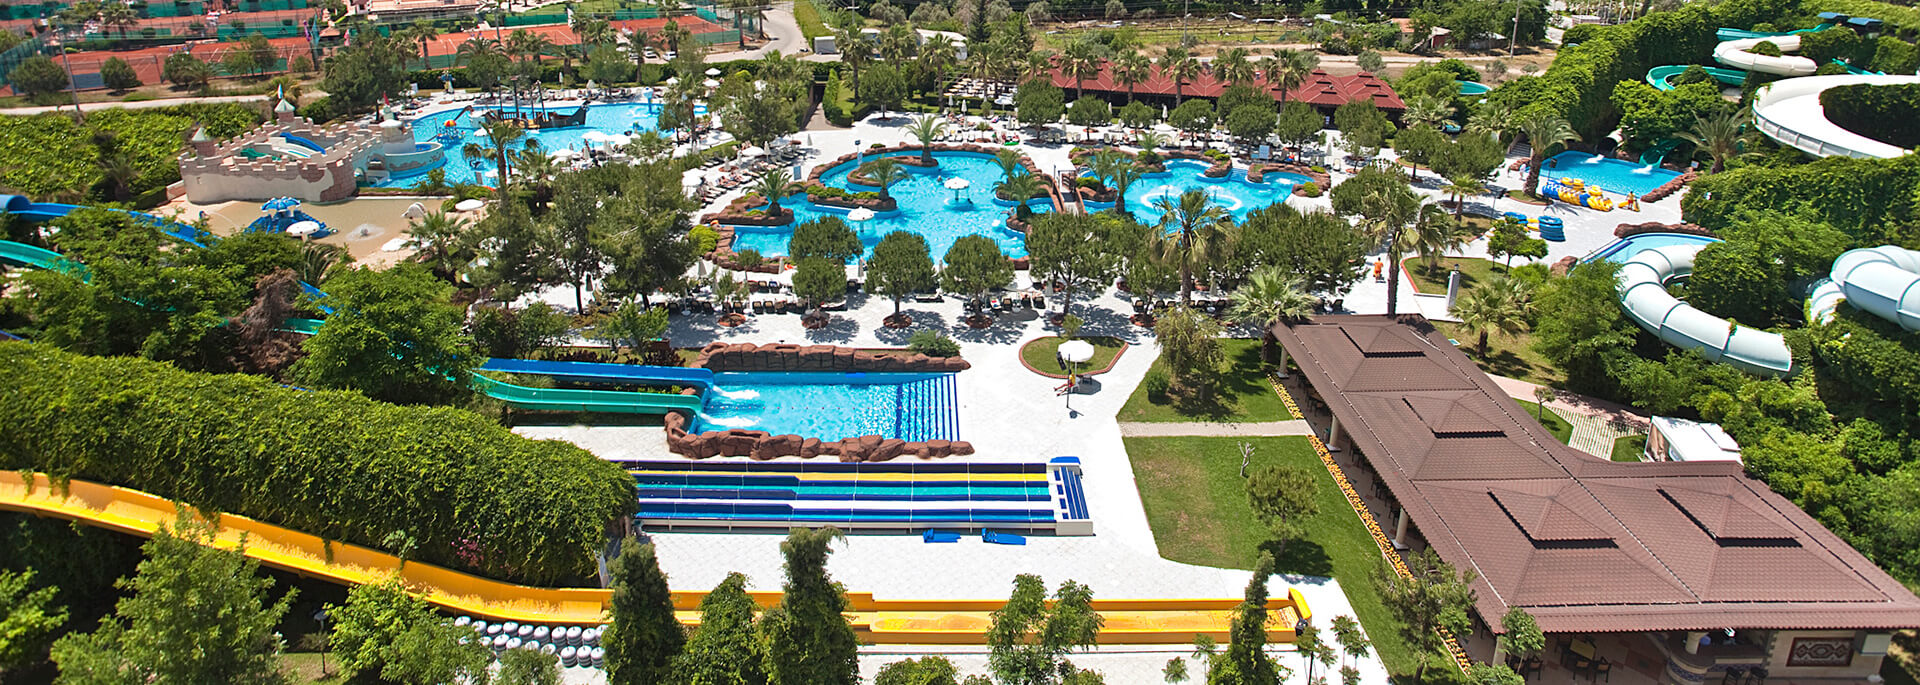 Beach & Waterpark - Ali Bey Park Manavgat - Side, Antalya, Turkey